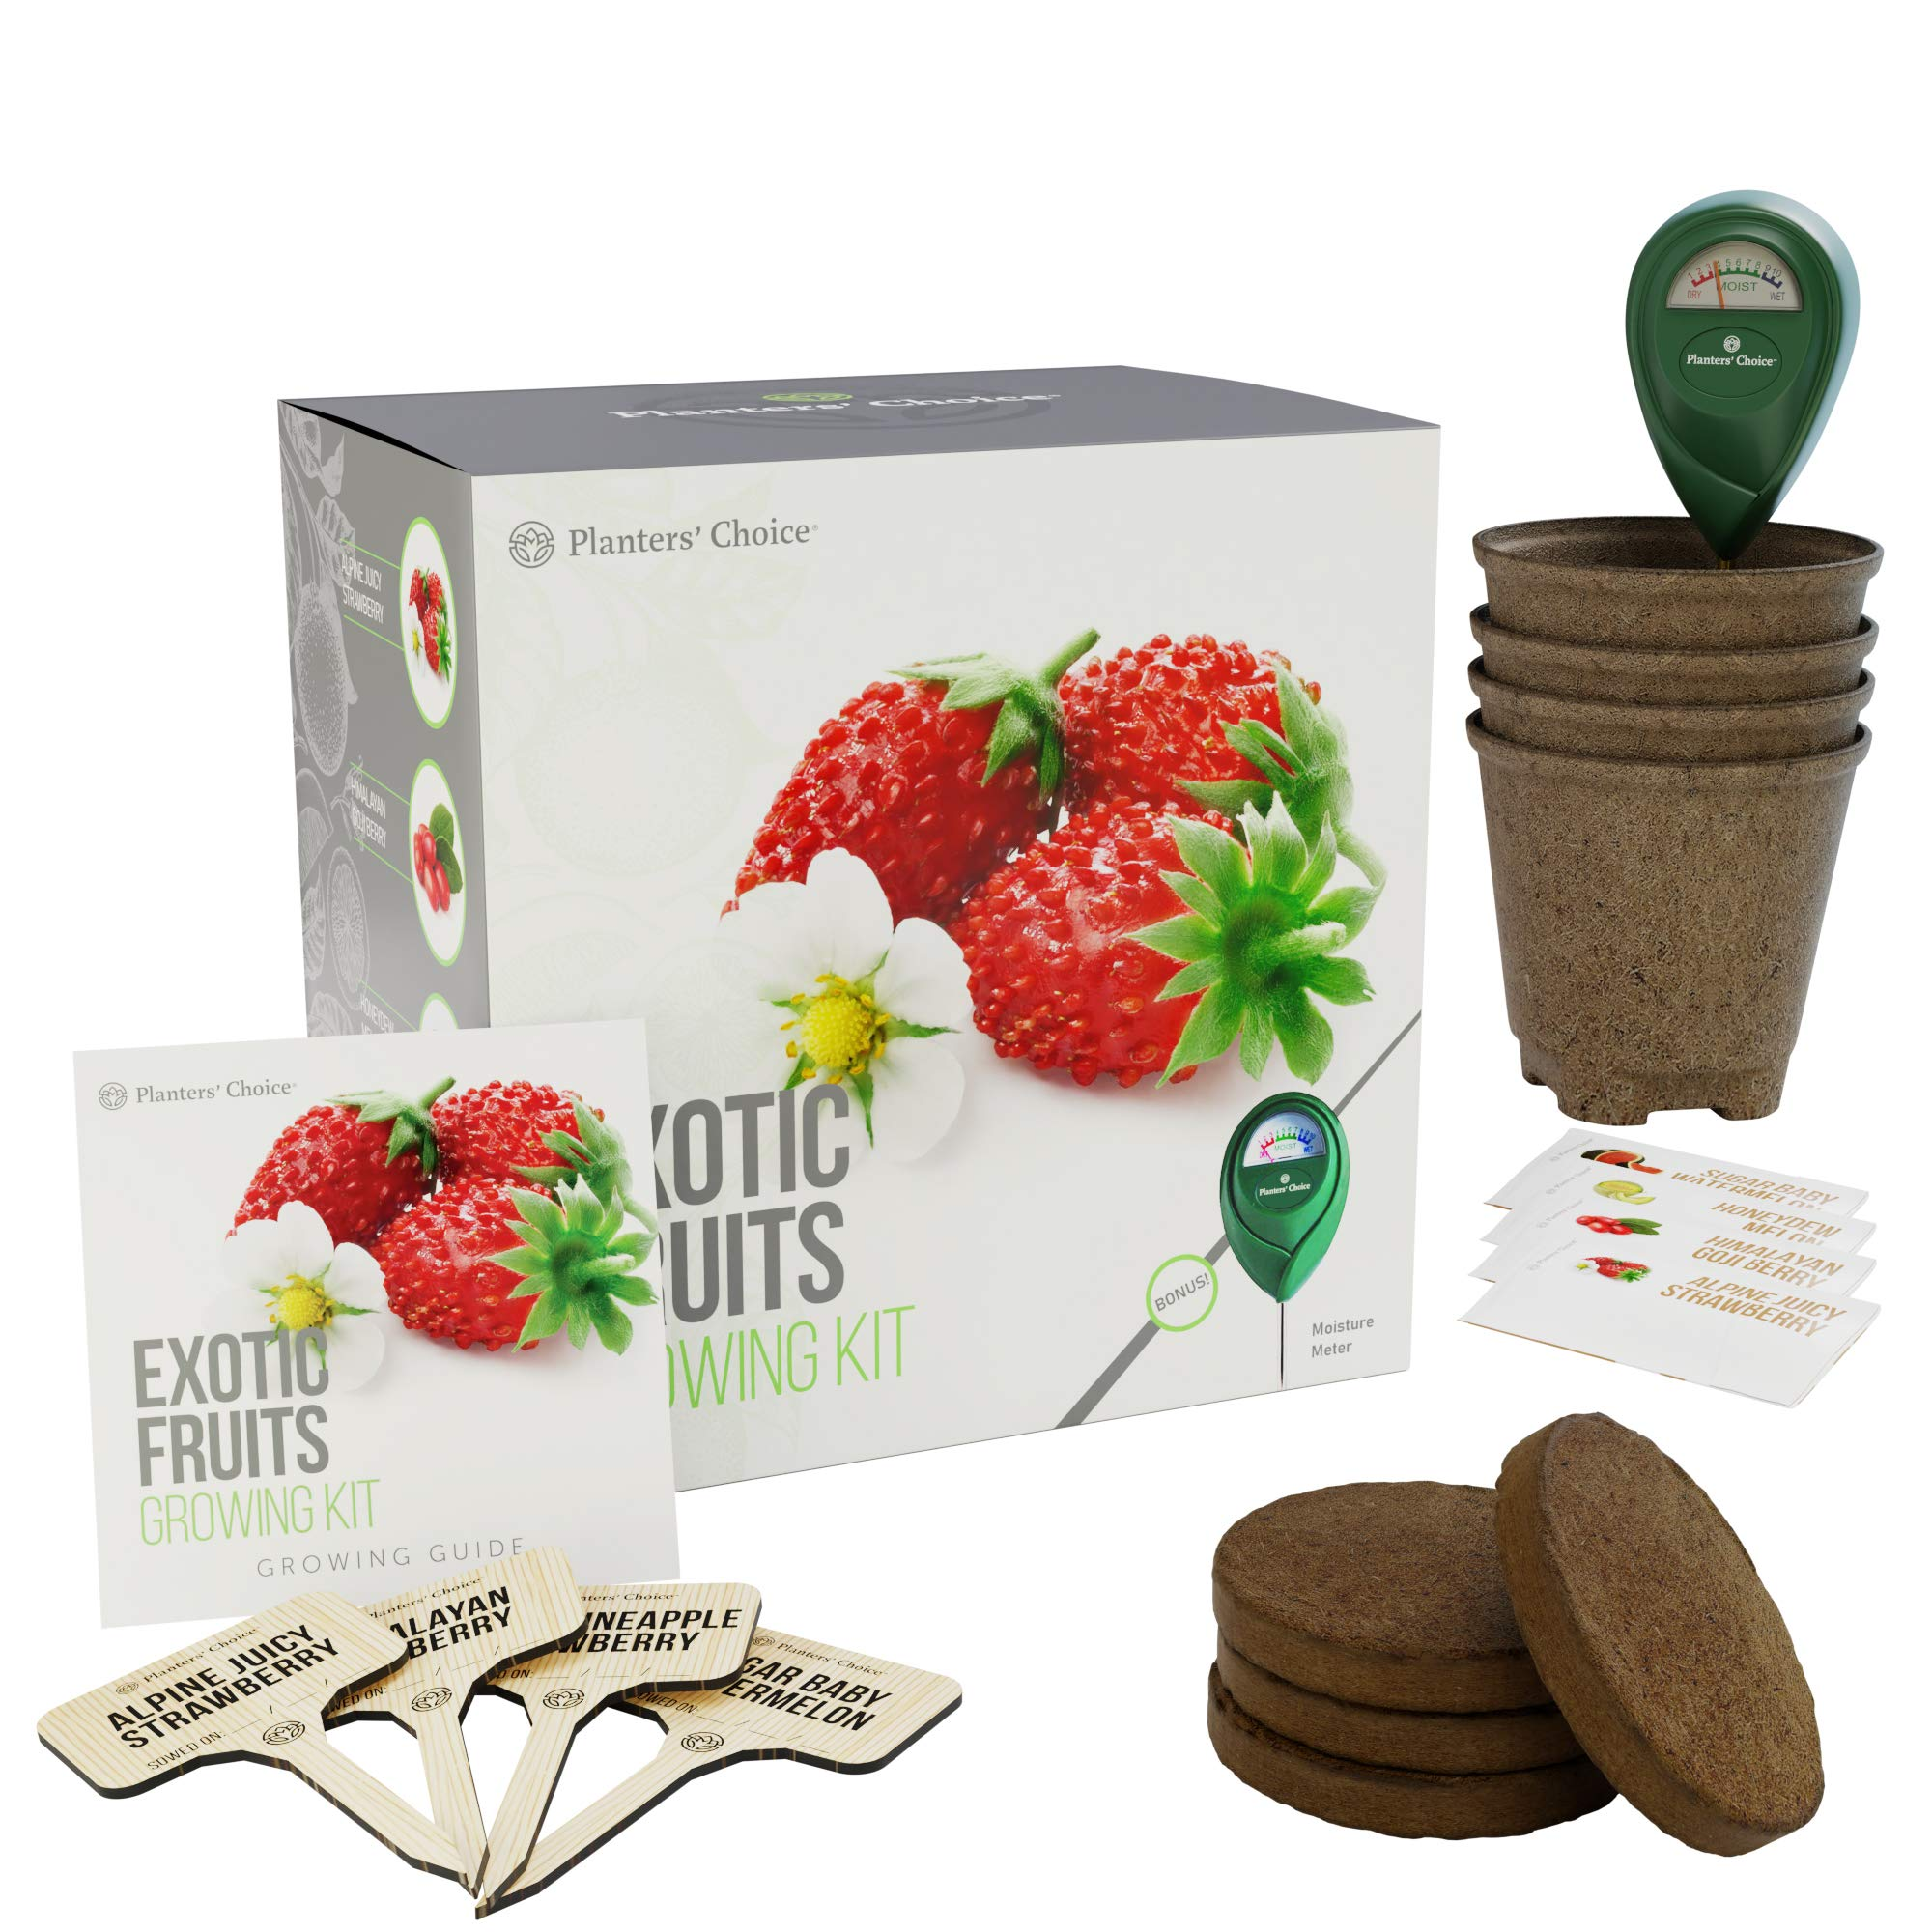 Planters' Choice Exotic Fruits Growing Kit - Everything Included to Easily Grow 4 Unique Fruits - Strawberries, Goji Berries, Honeydew, Watermelon + Moisture Meter by Planters' Choice (Image #5)